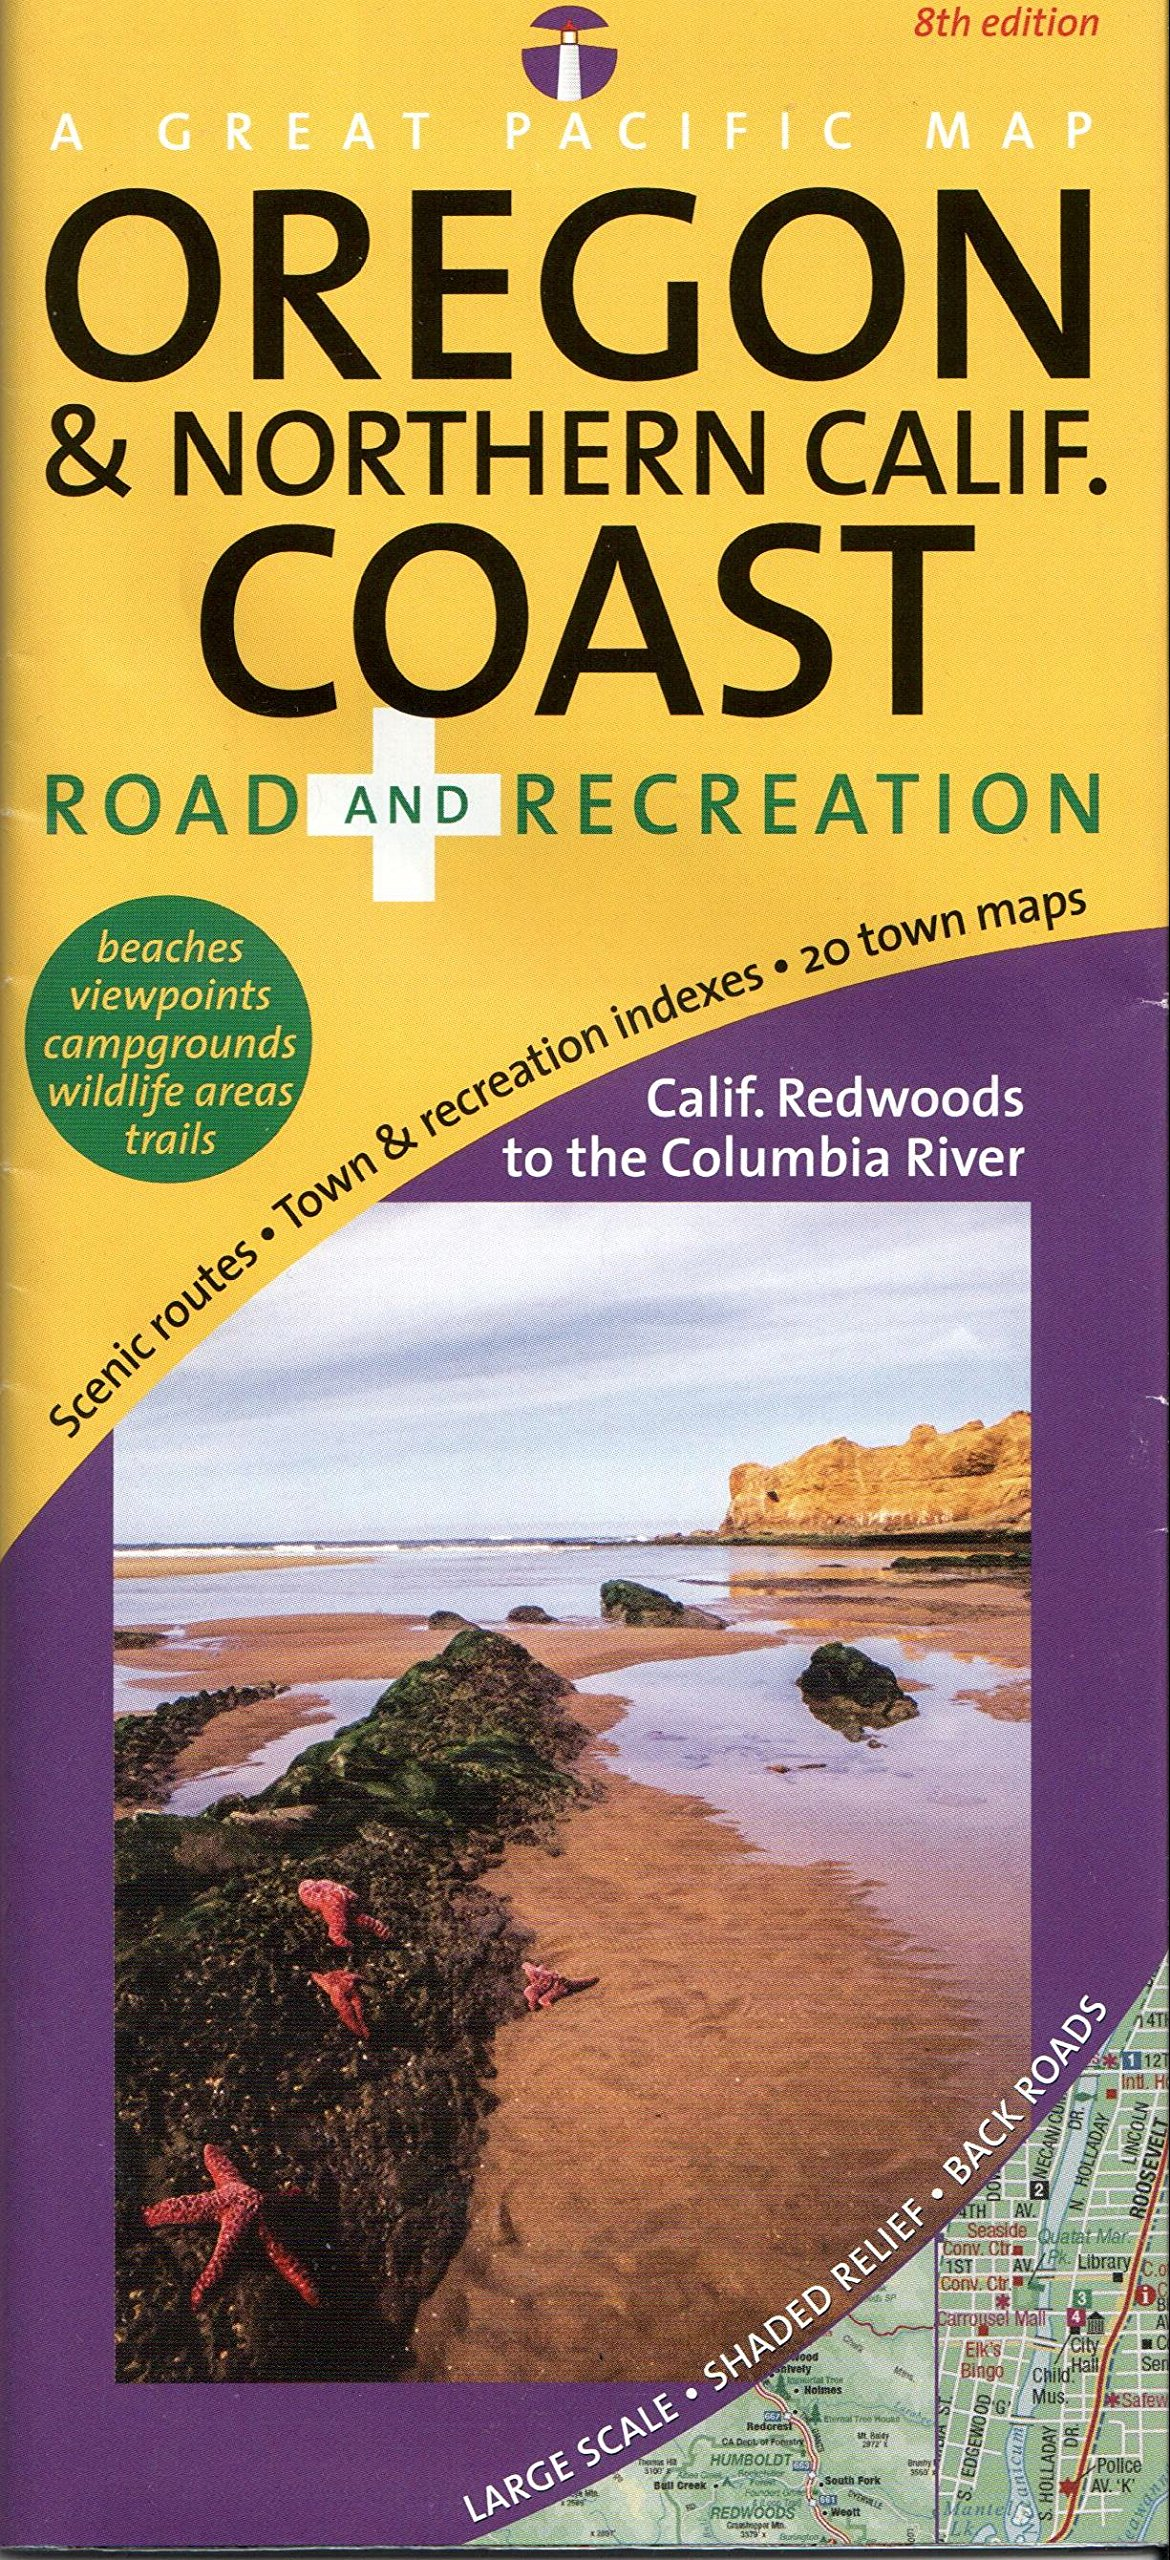 Oregon northern california coast road recreation map 8th oregon northern california coast road recreation map 8th edition david jr peckarsky cartography by bob lindquist rob kemp 9780938011811 fandeluxe Gallery